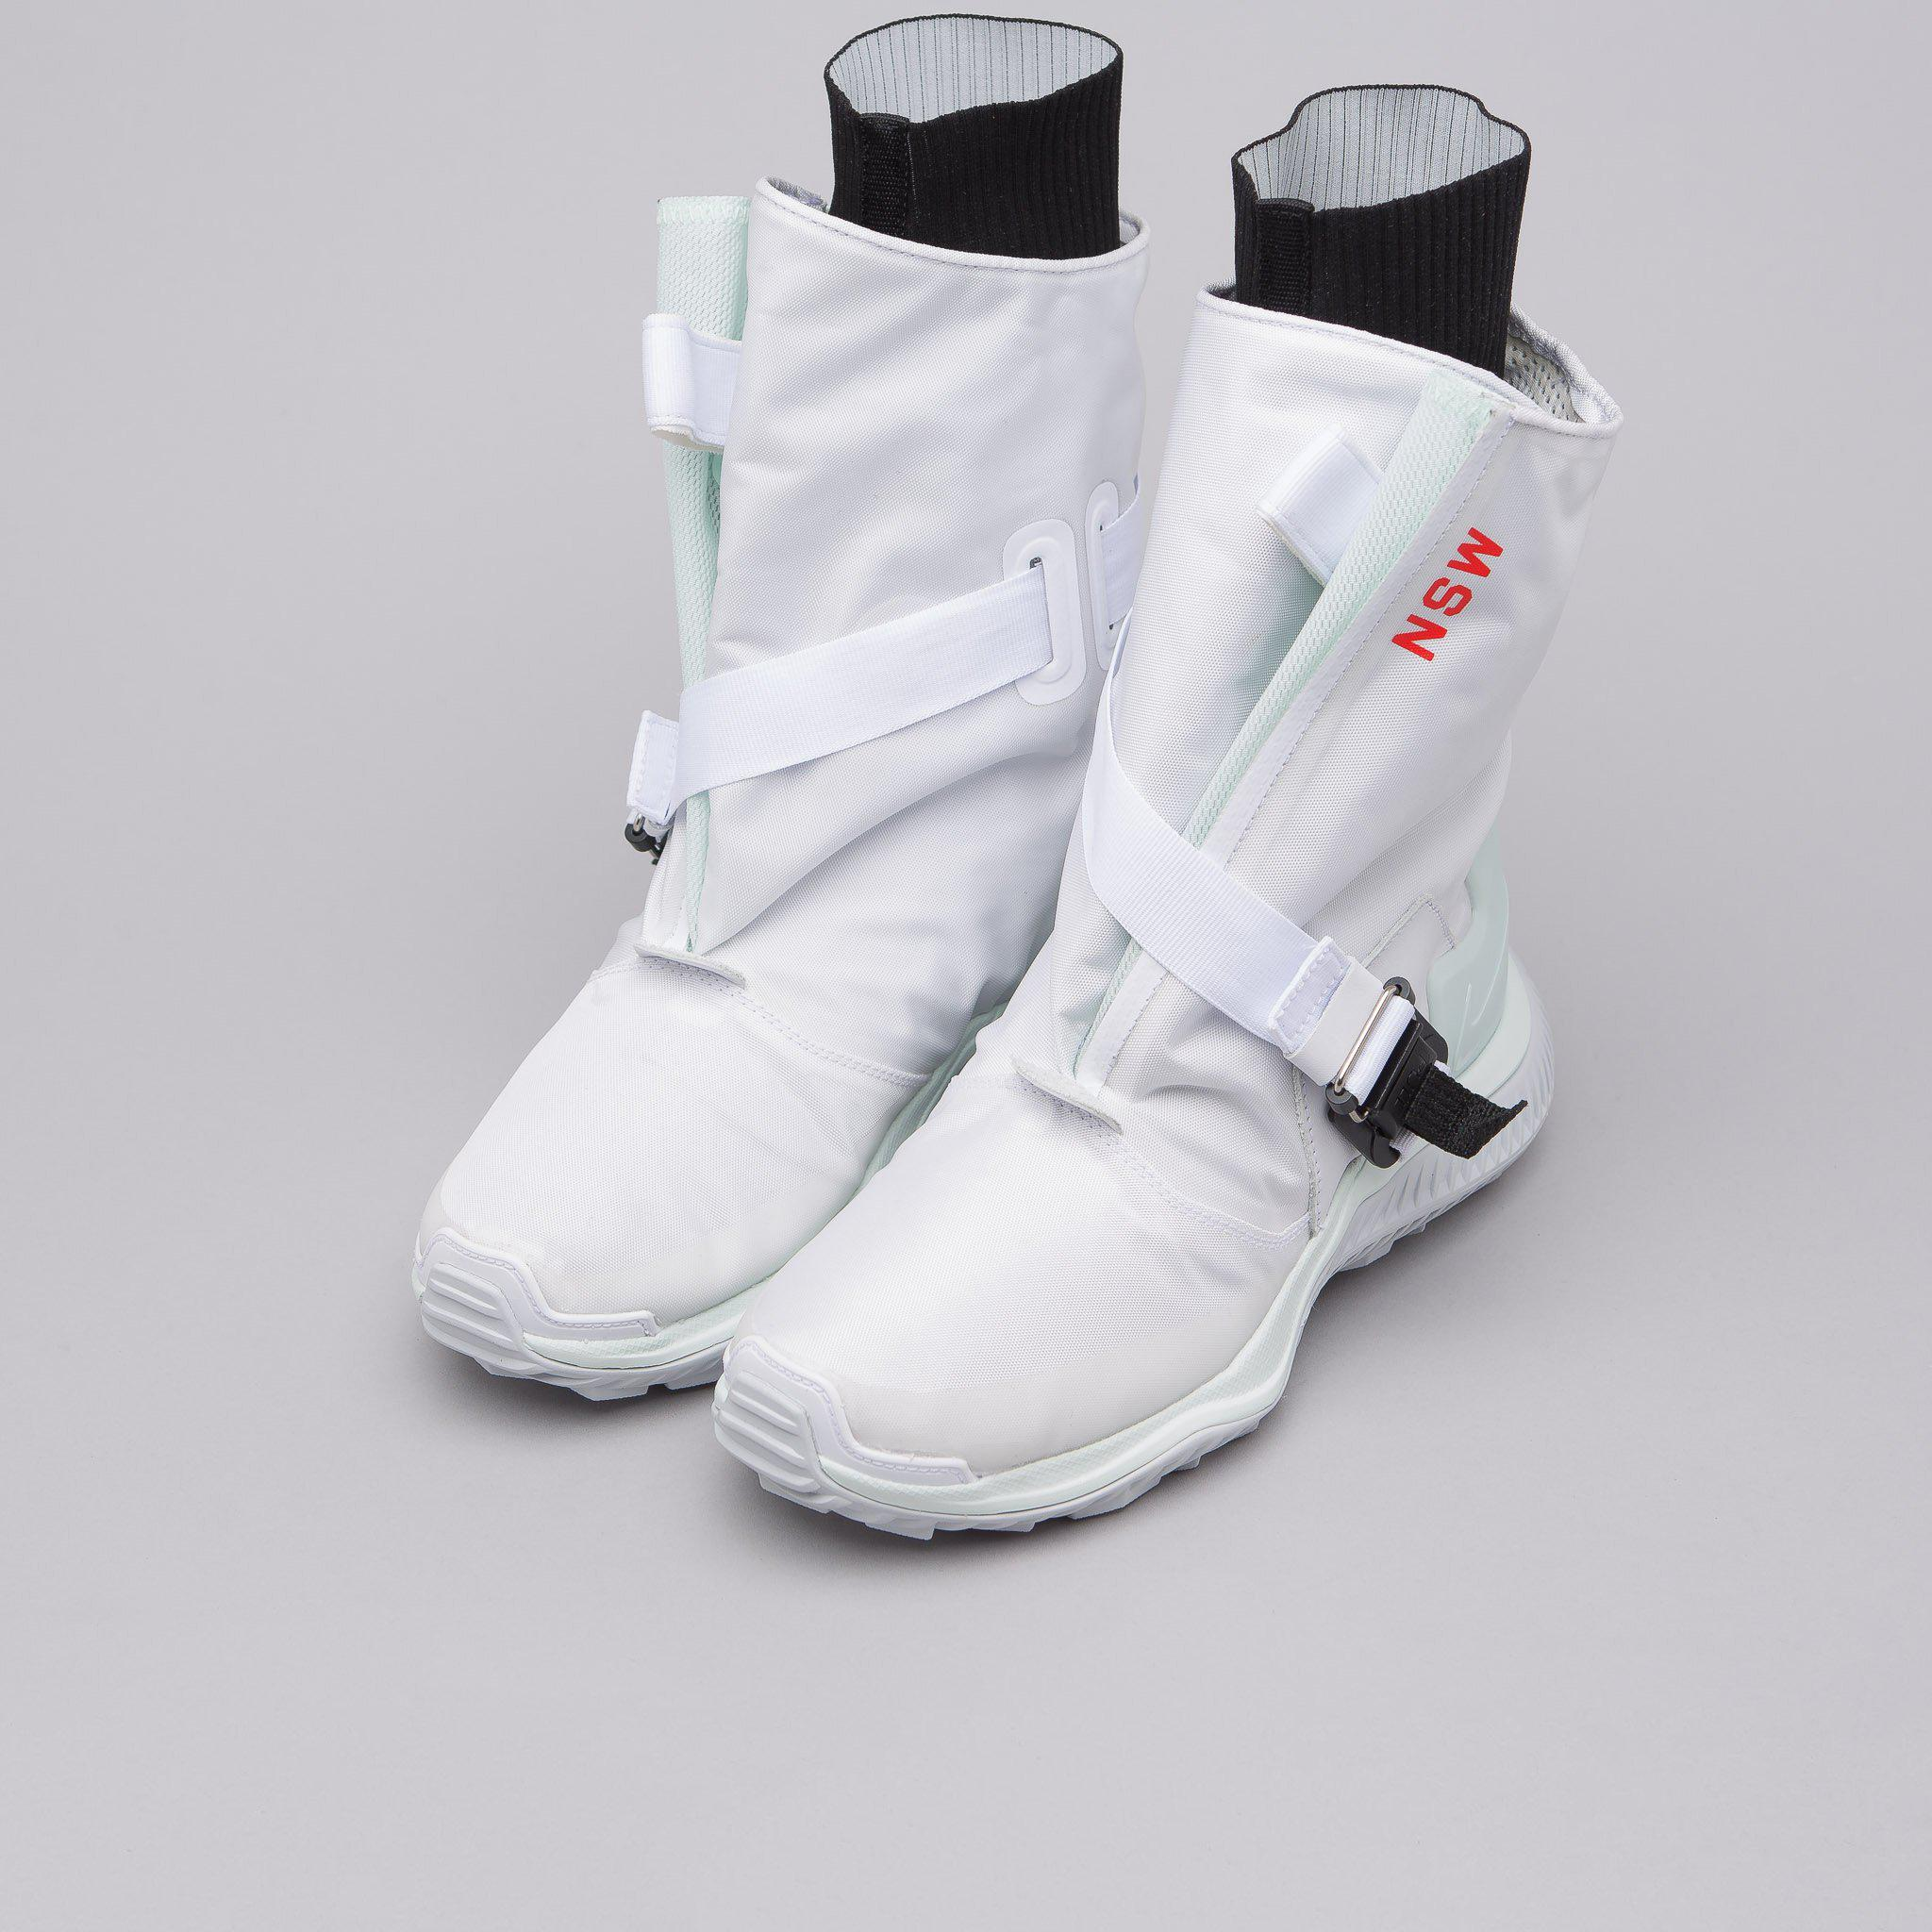 brand new a7c34 d1052 Lyst - Nike Womens Acg Gaiter Boot In White in White for Men